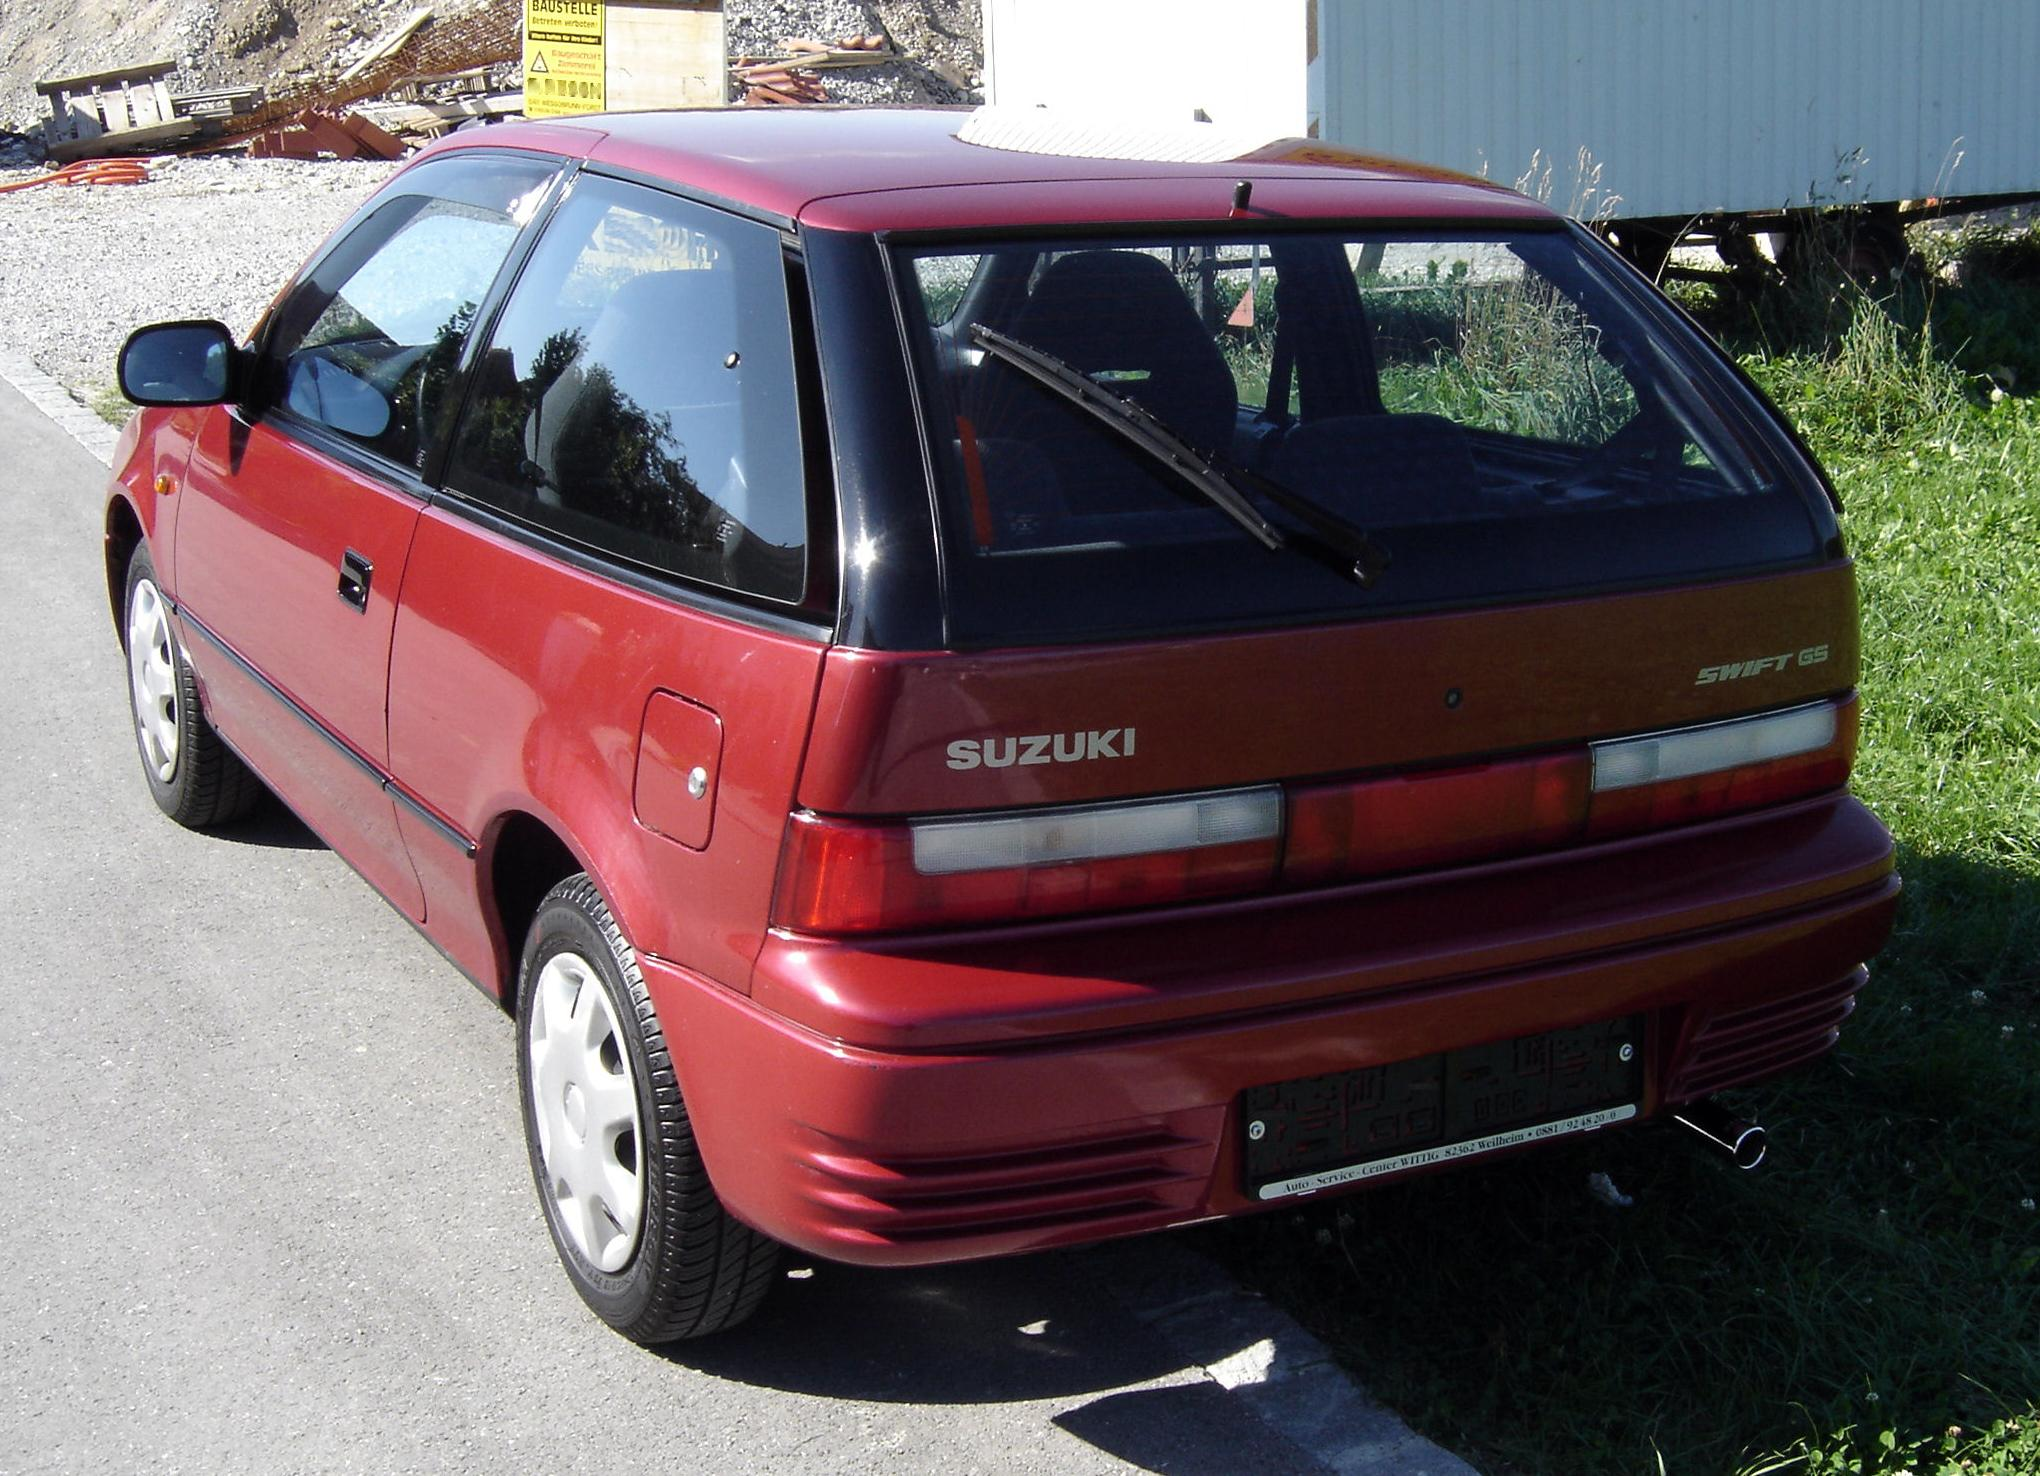 What Is The Weight Of A Suzuki Forsa